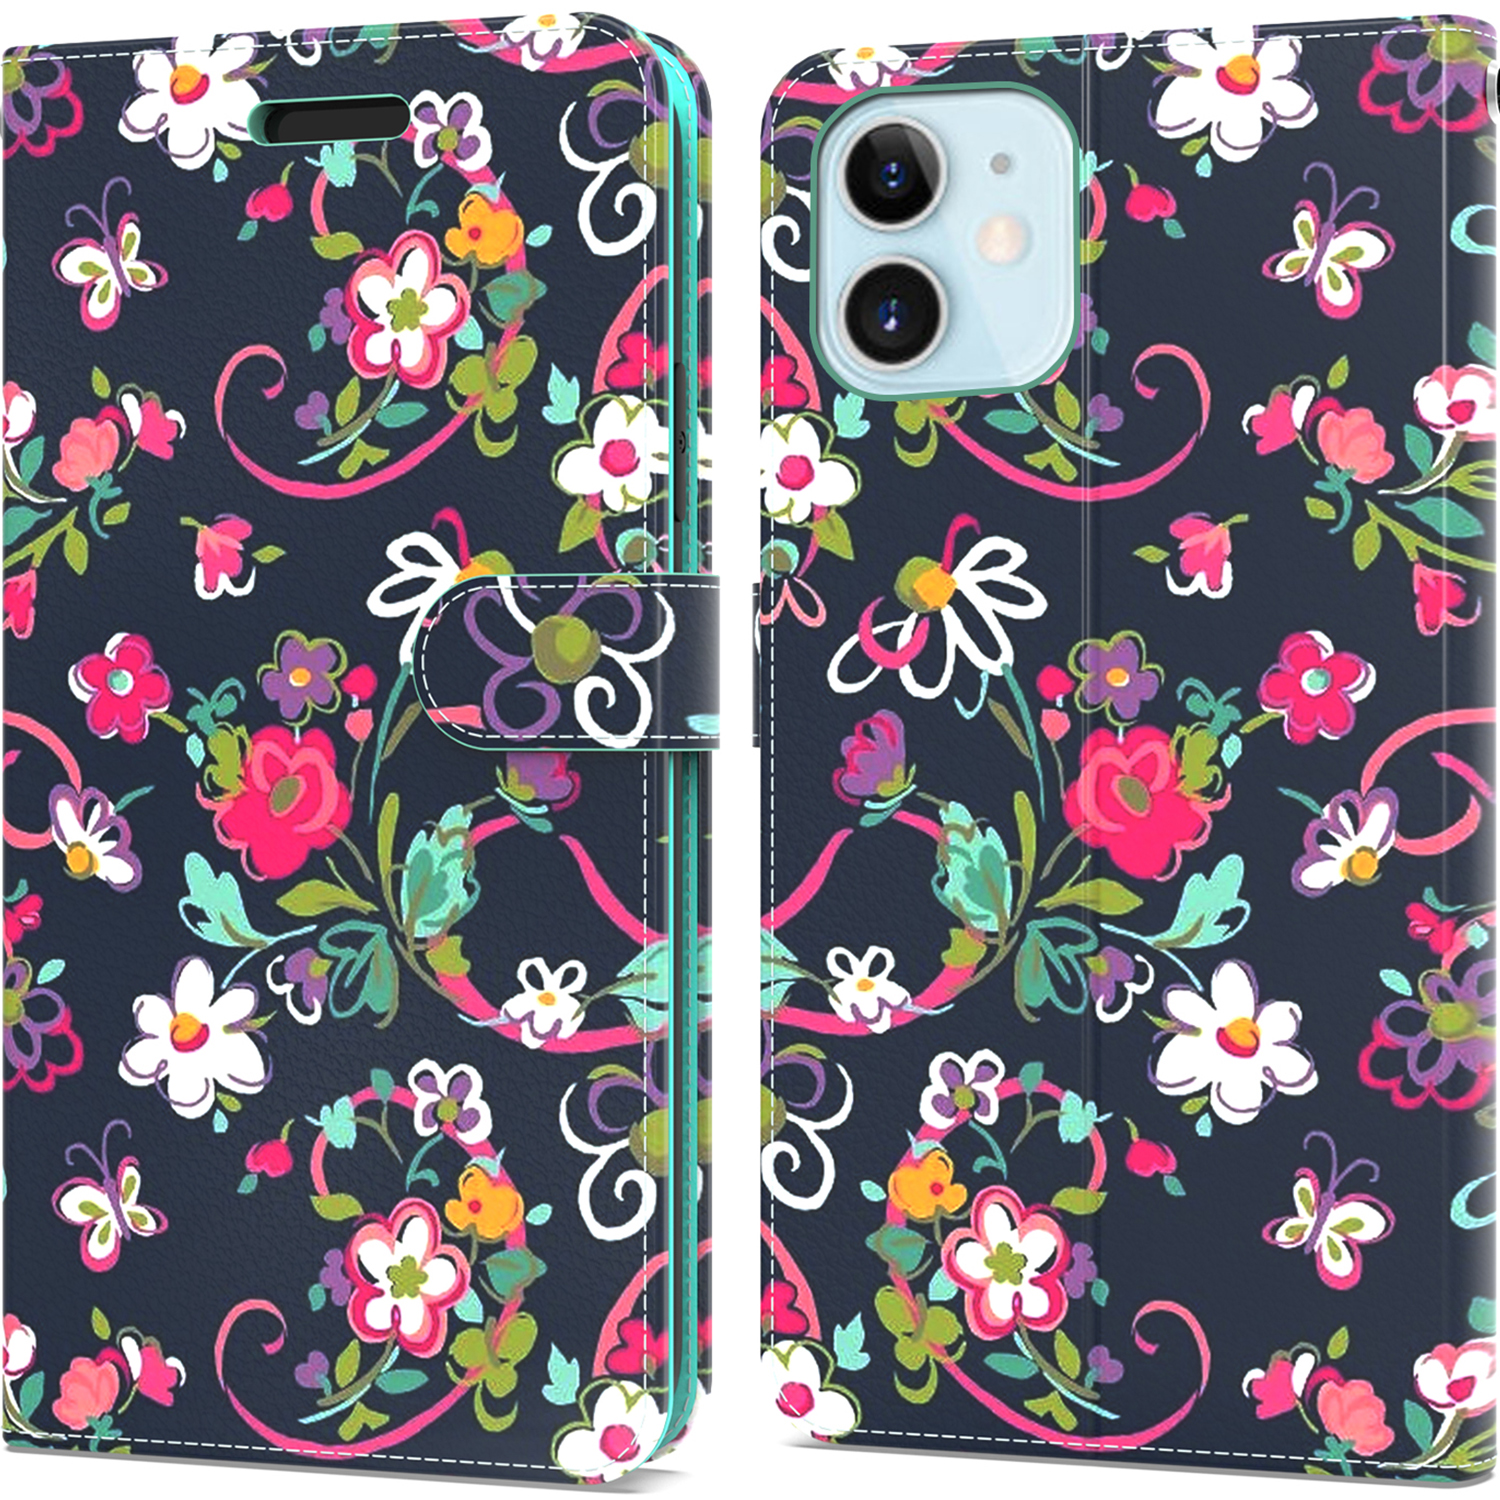 and beautifully zte grand 3 phone cases Vihar the area